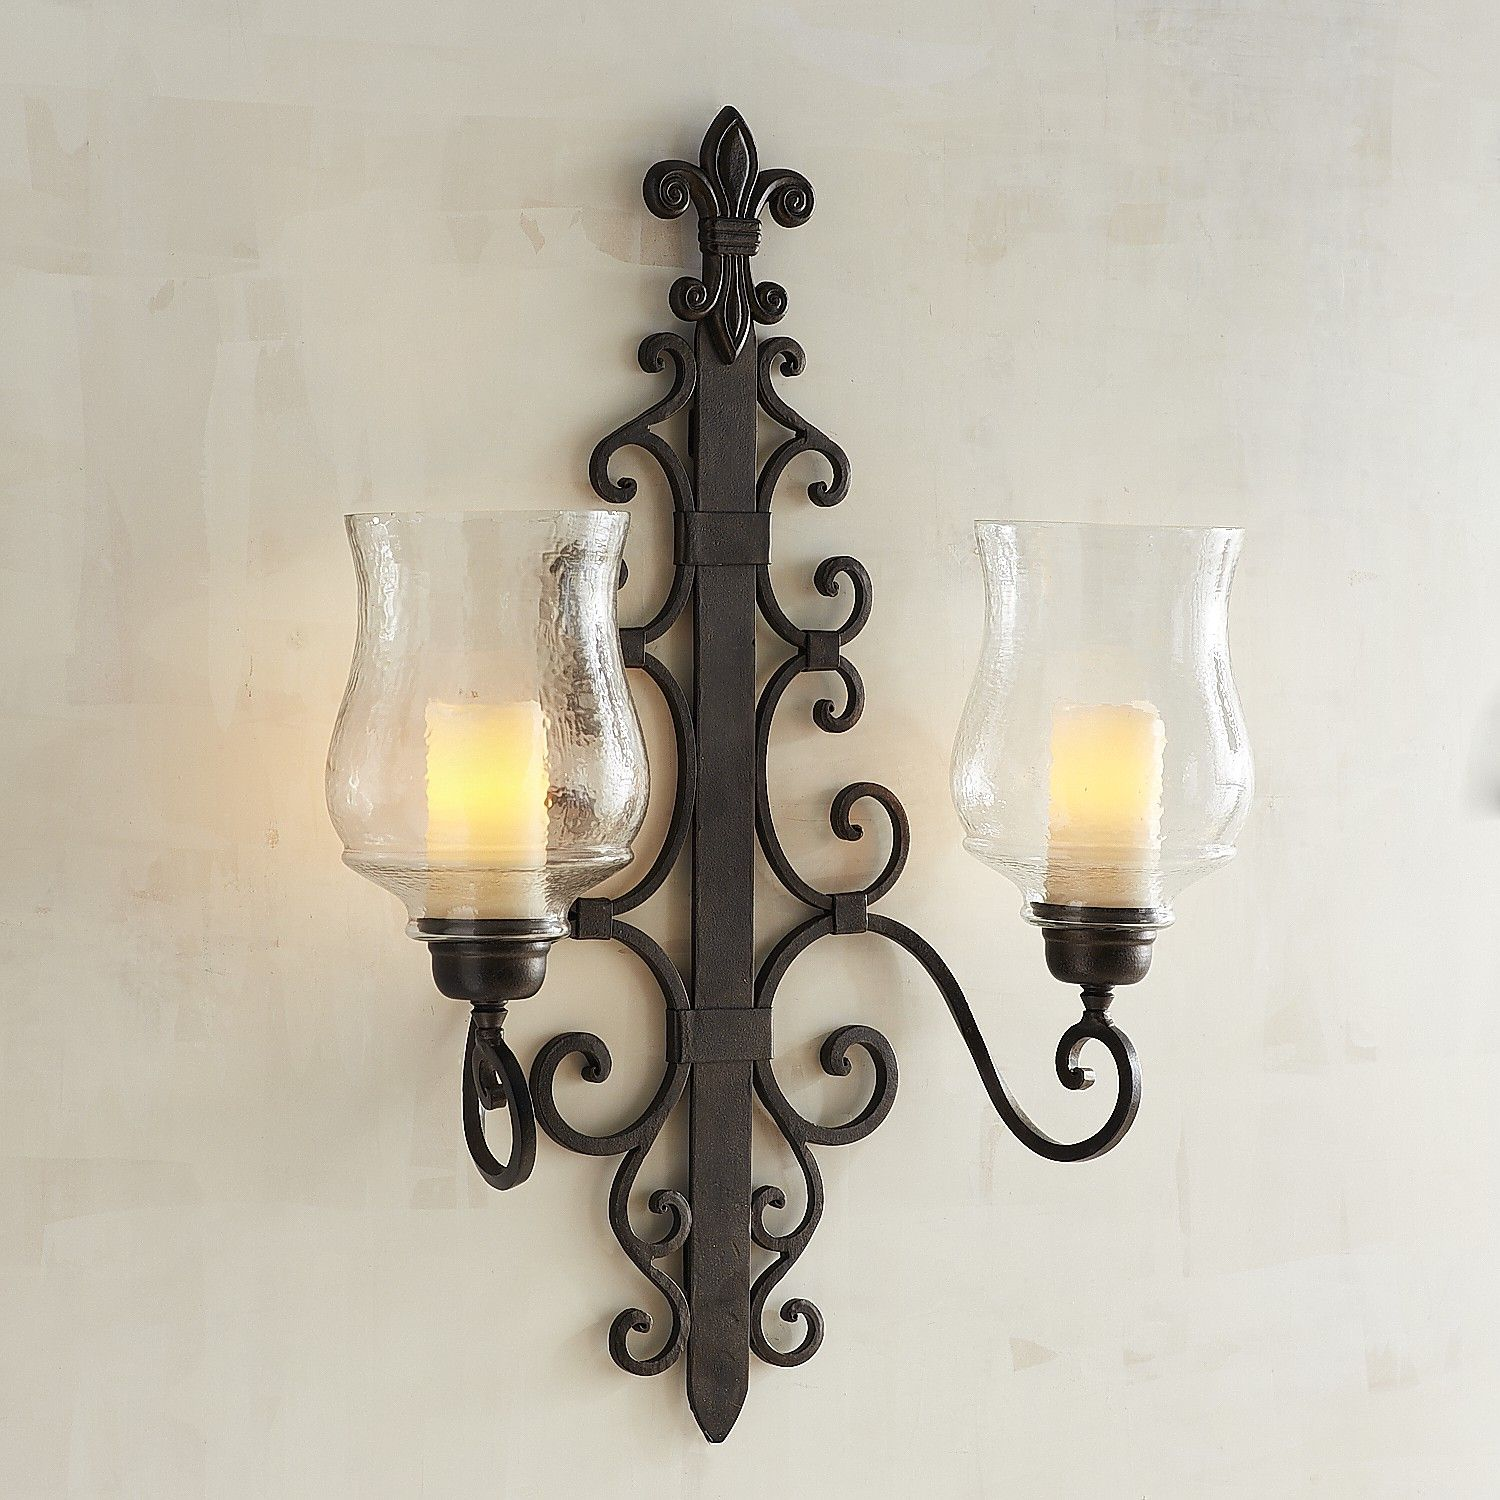 Abella Pillar Candle Wall Sconce | Candle wall sconces ... on Wall Mounted Candle Sconce id=14533